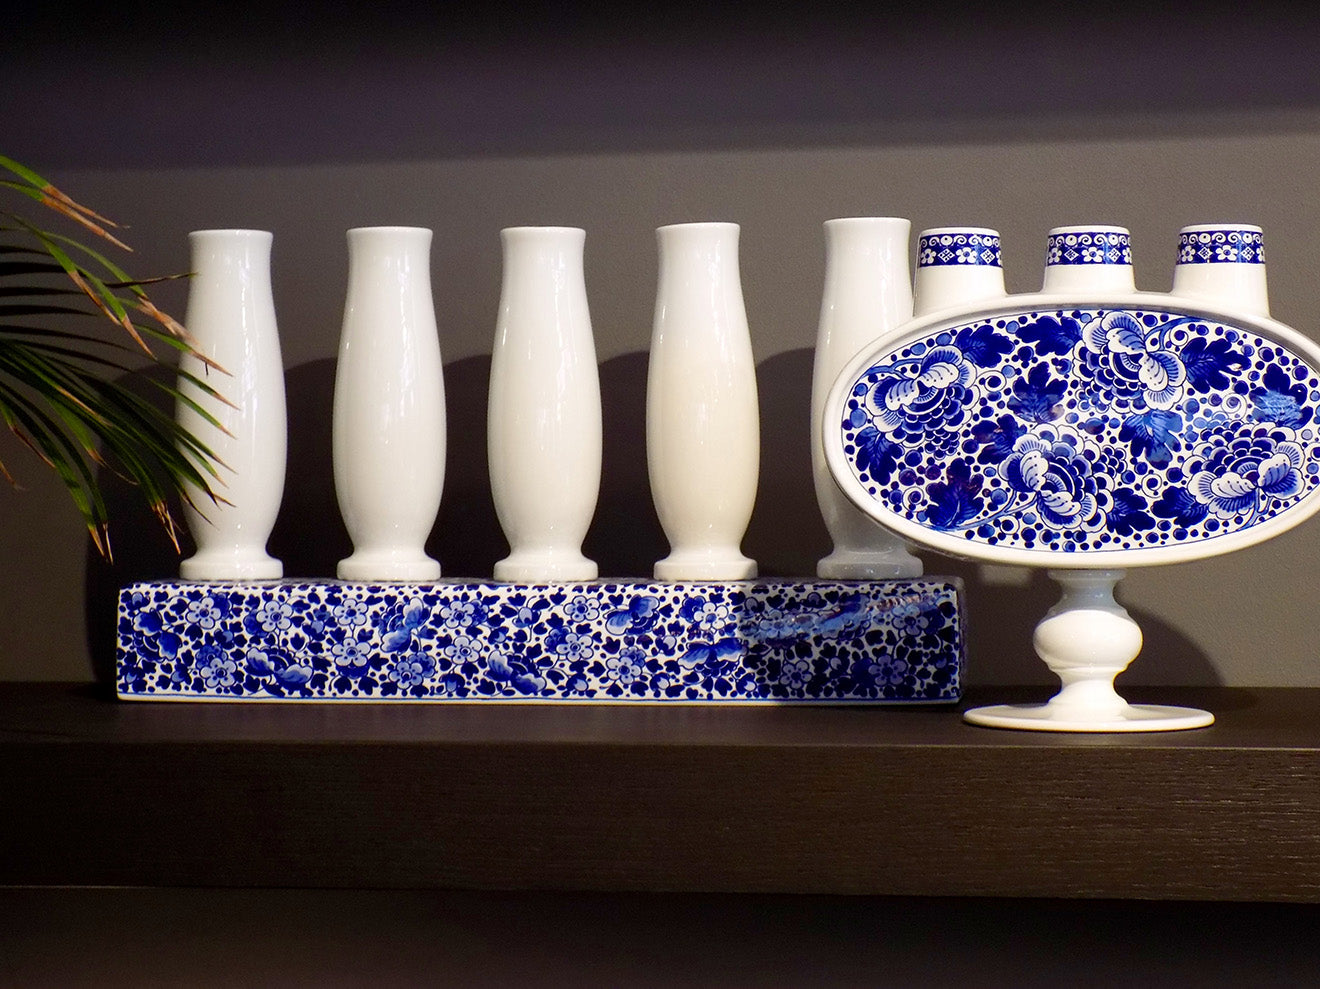 Moooi Delft blue and white floral ceramics